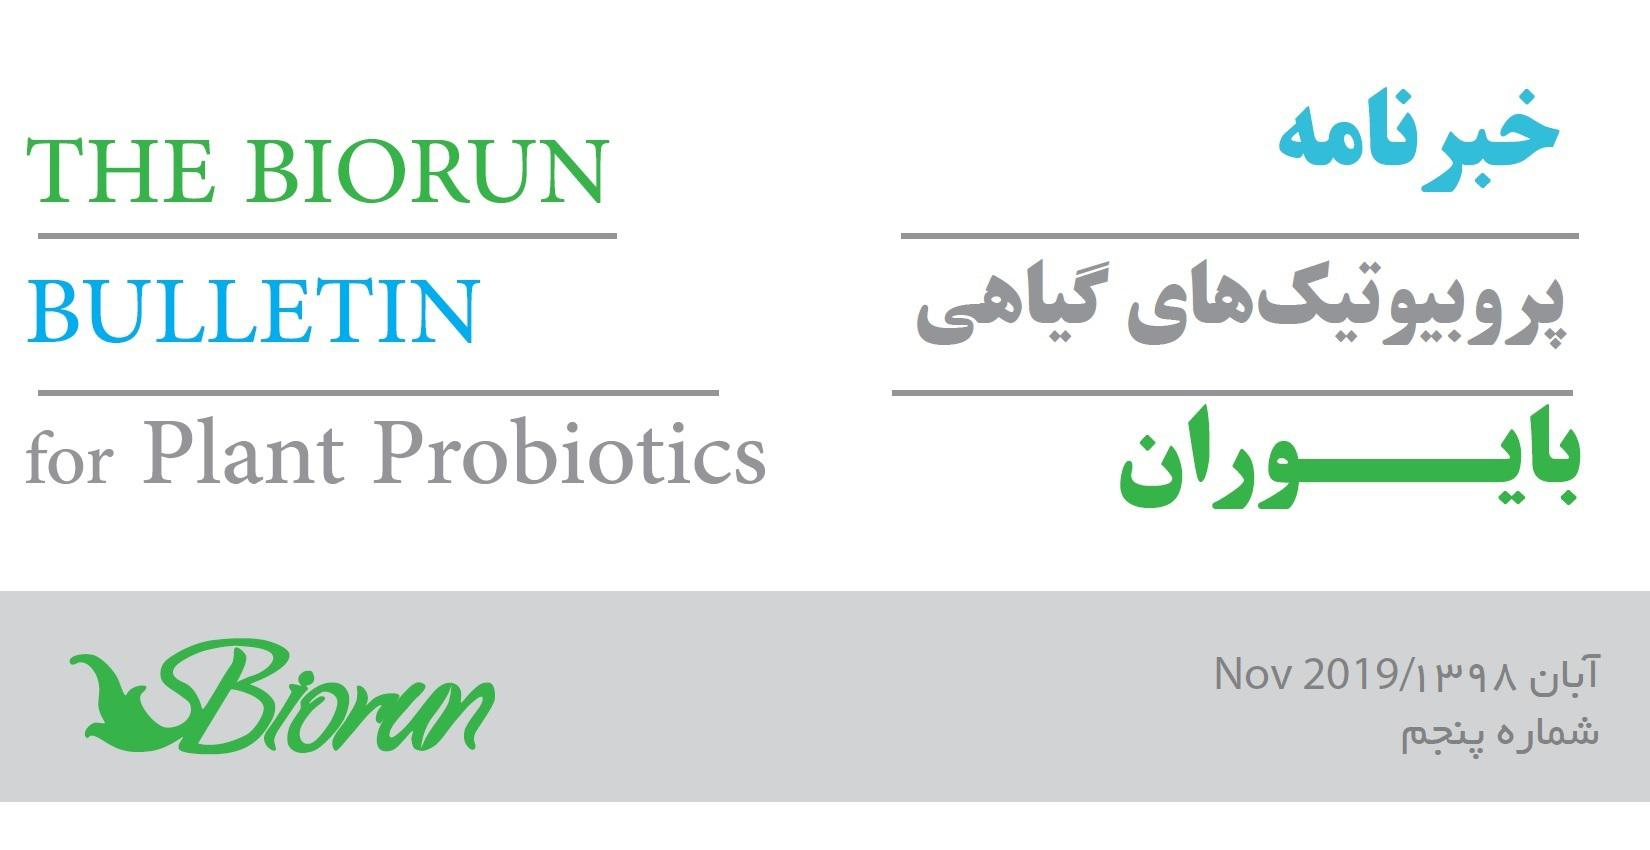 The Biorun Bulletin for Plant Probiotics, No. 5, November 2019